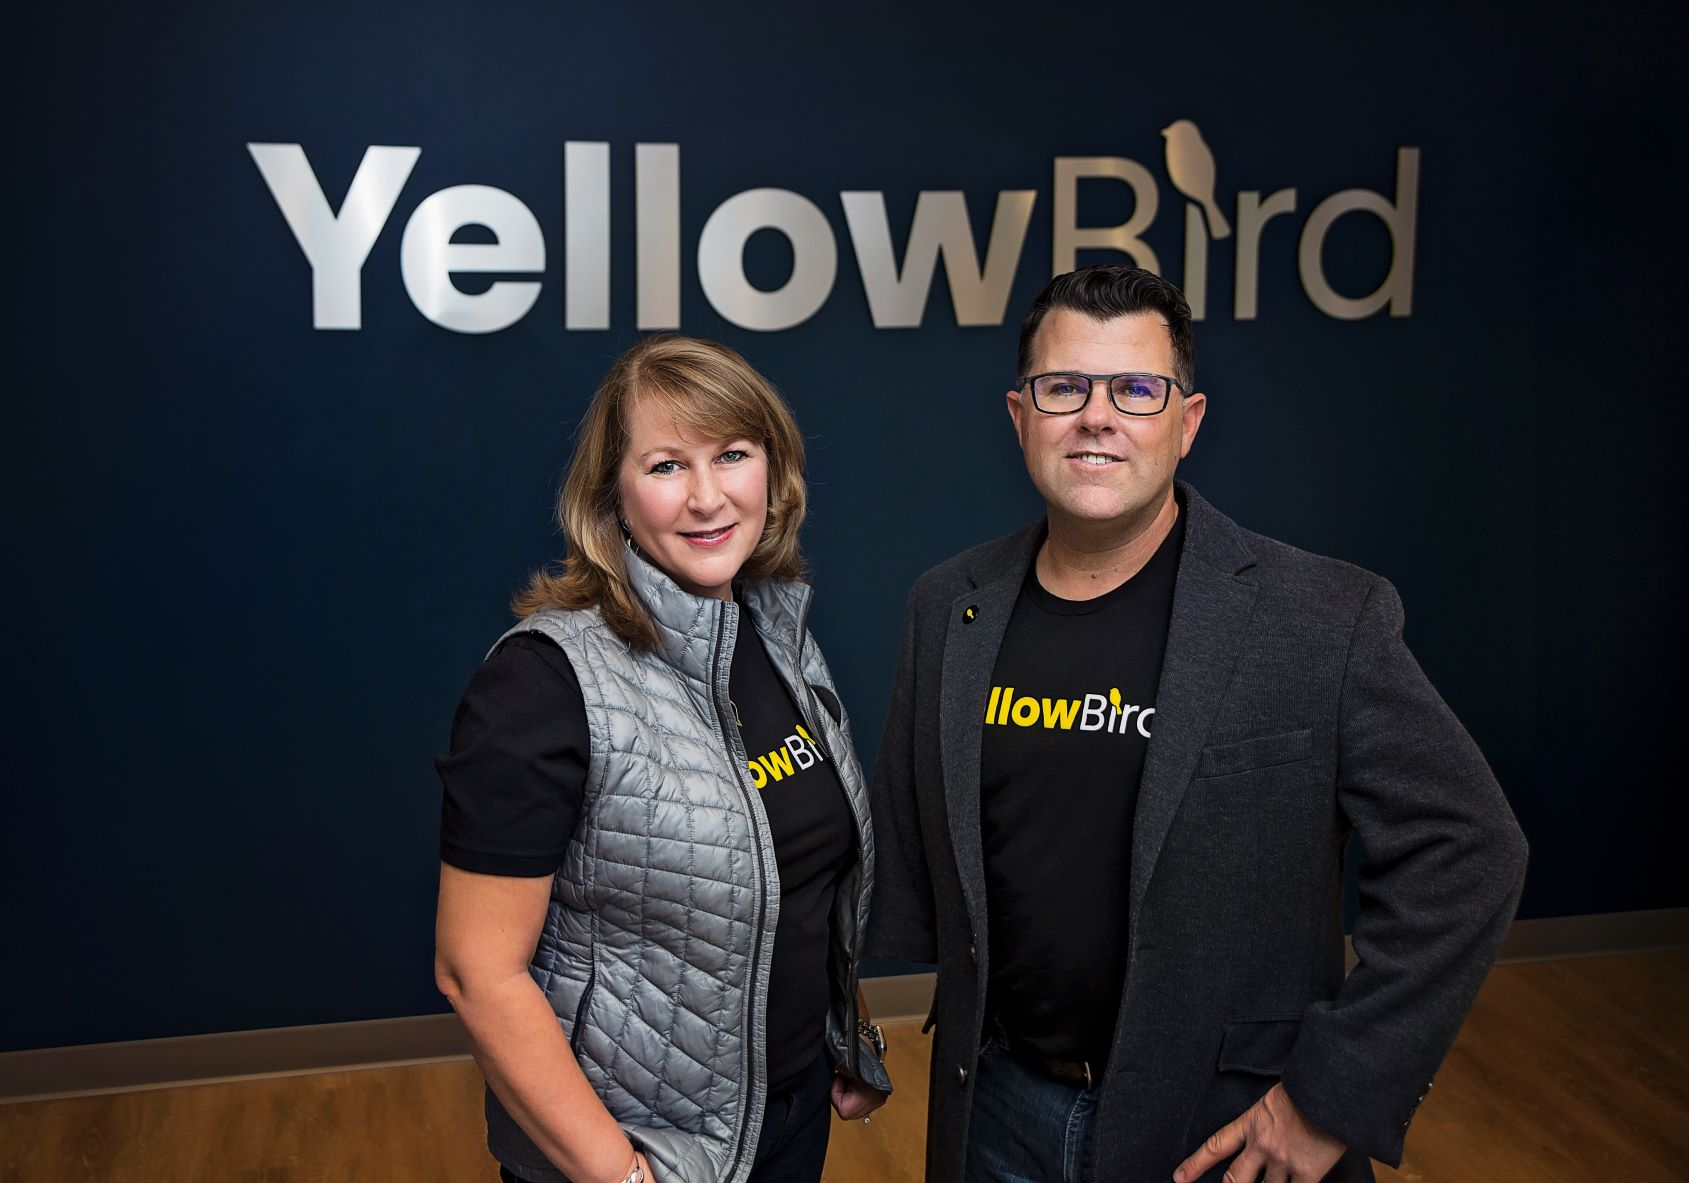 YellowBird cofounders Michelle Tinsley and Michael Zalle